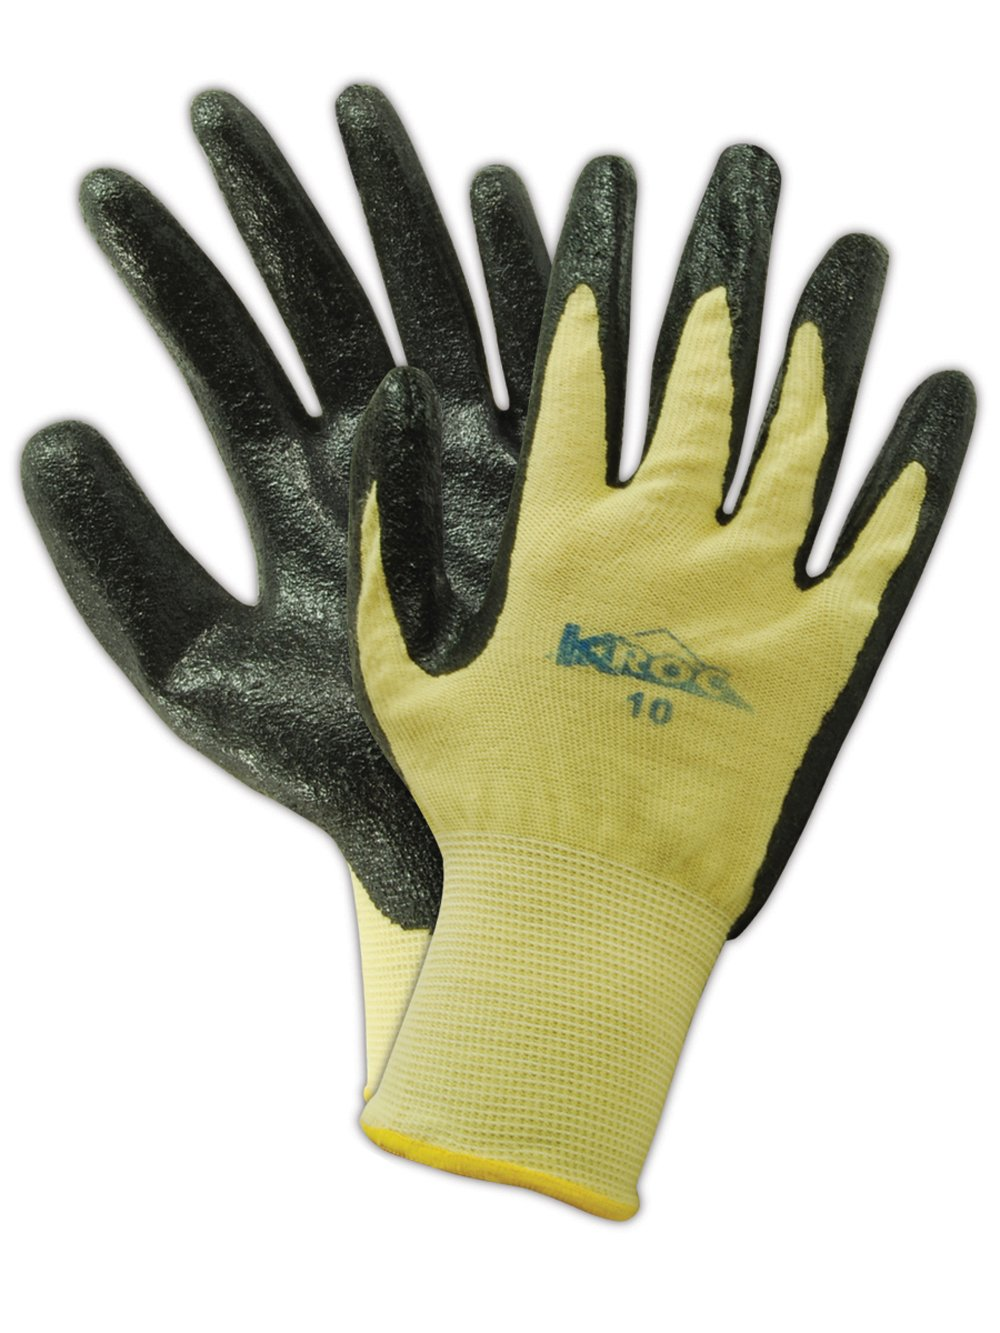 """Magid K-ROC KEV4308 Kevlar Knit Glove, Nitrile Palm Coating, Knit Wrist Cuff, 8.5"""" Length, Size 6 (Pack of 12 Pairs)"""